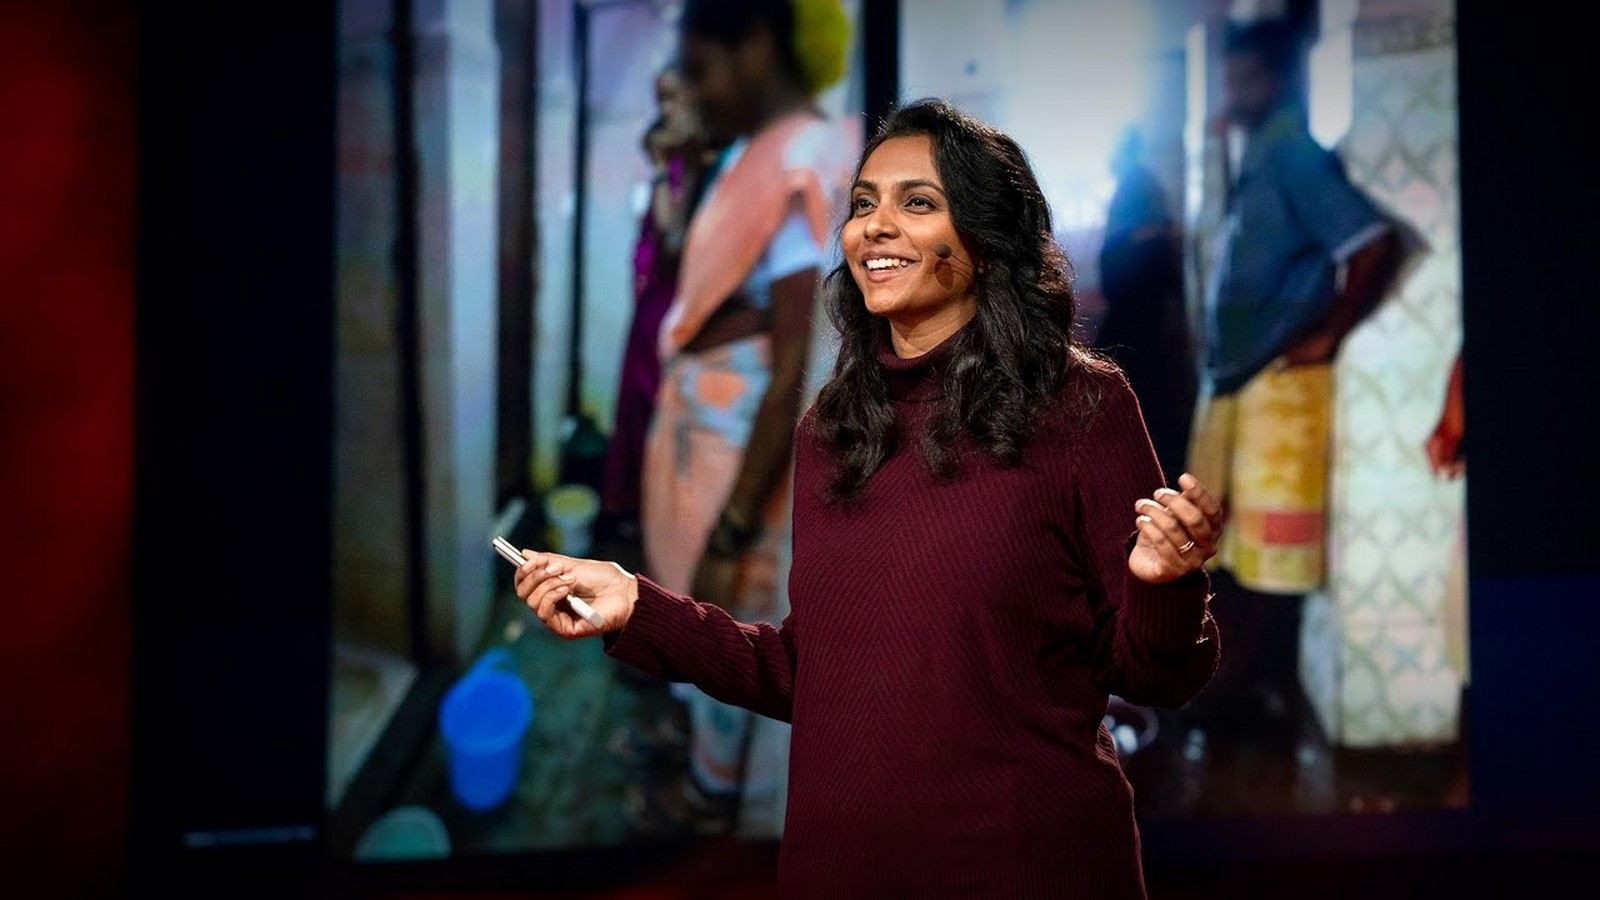 TedTalks for Architects: What if the poor were part of city planning? by Smruti Jukur Johari - Sheet1